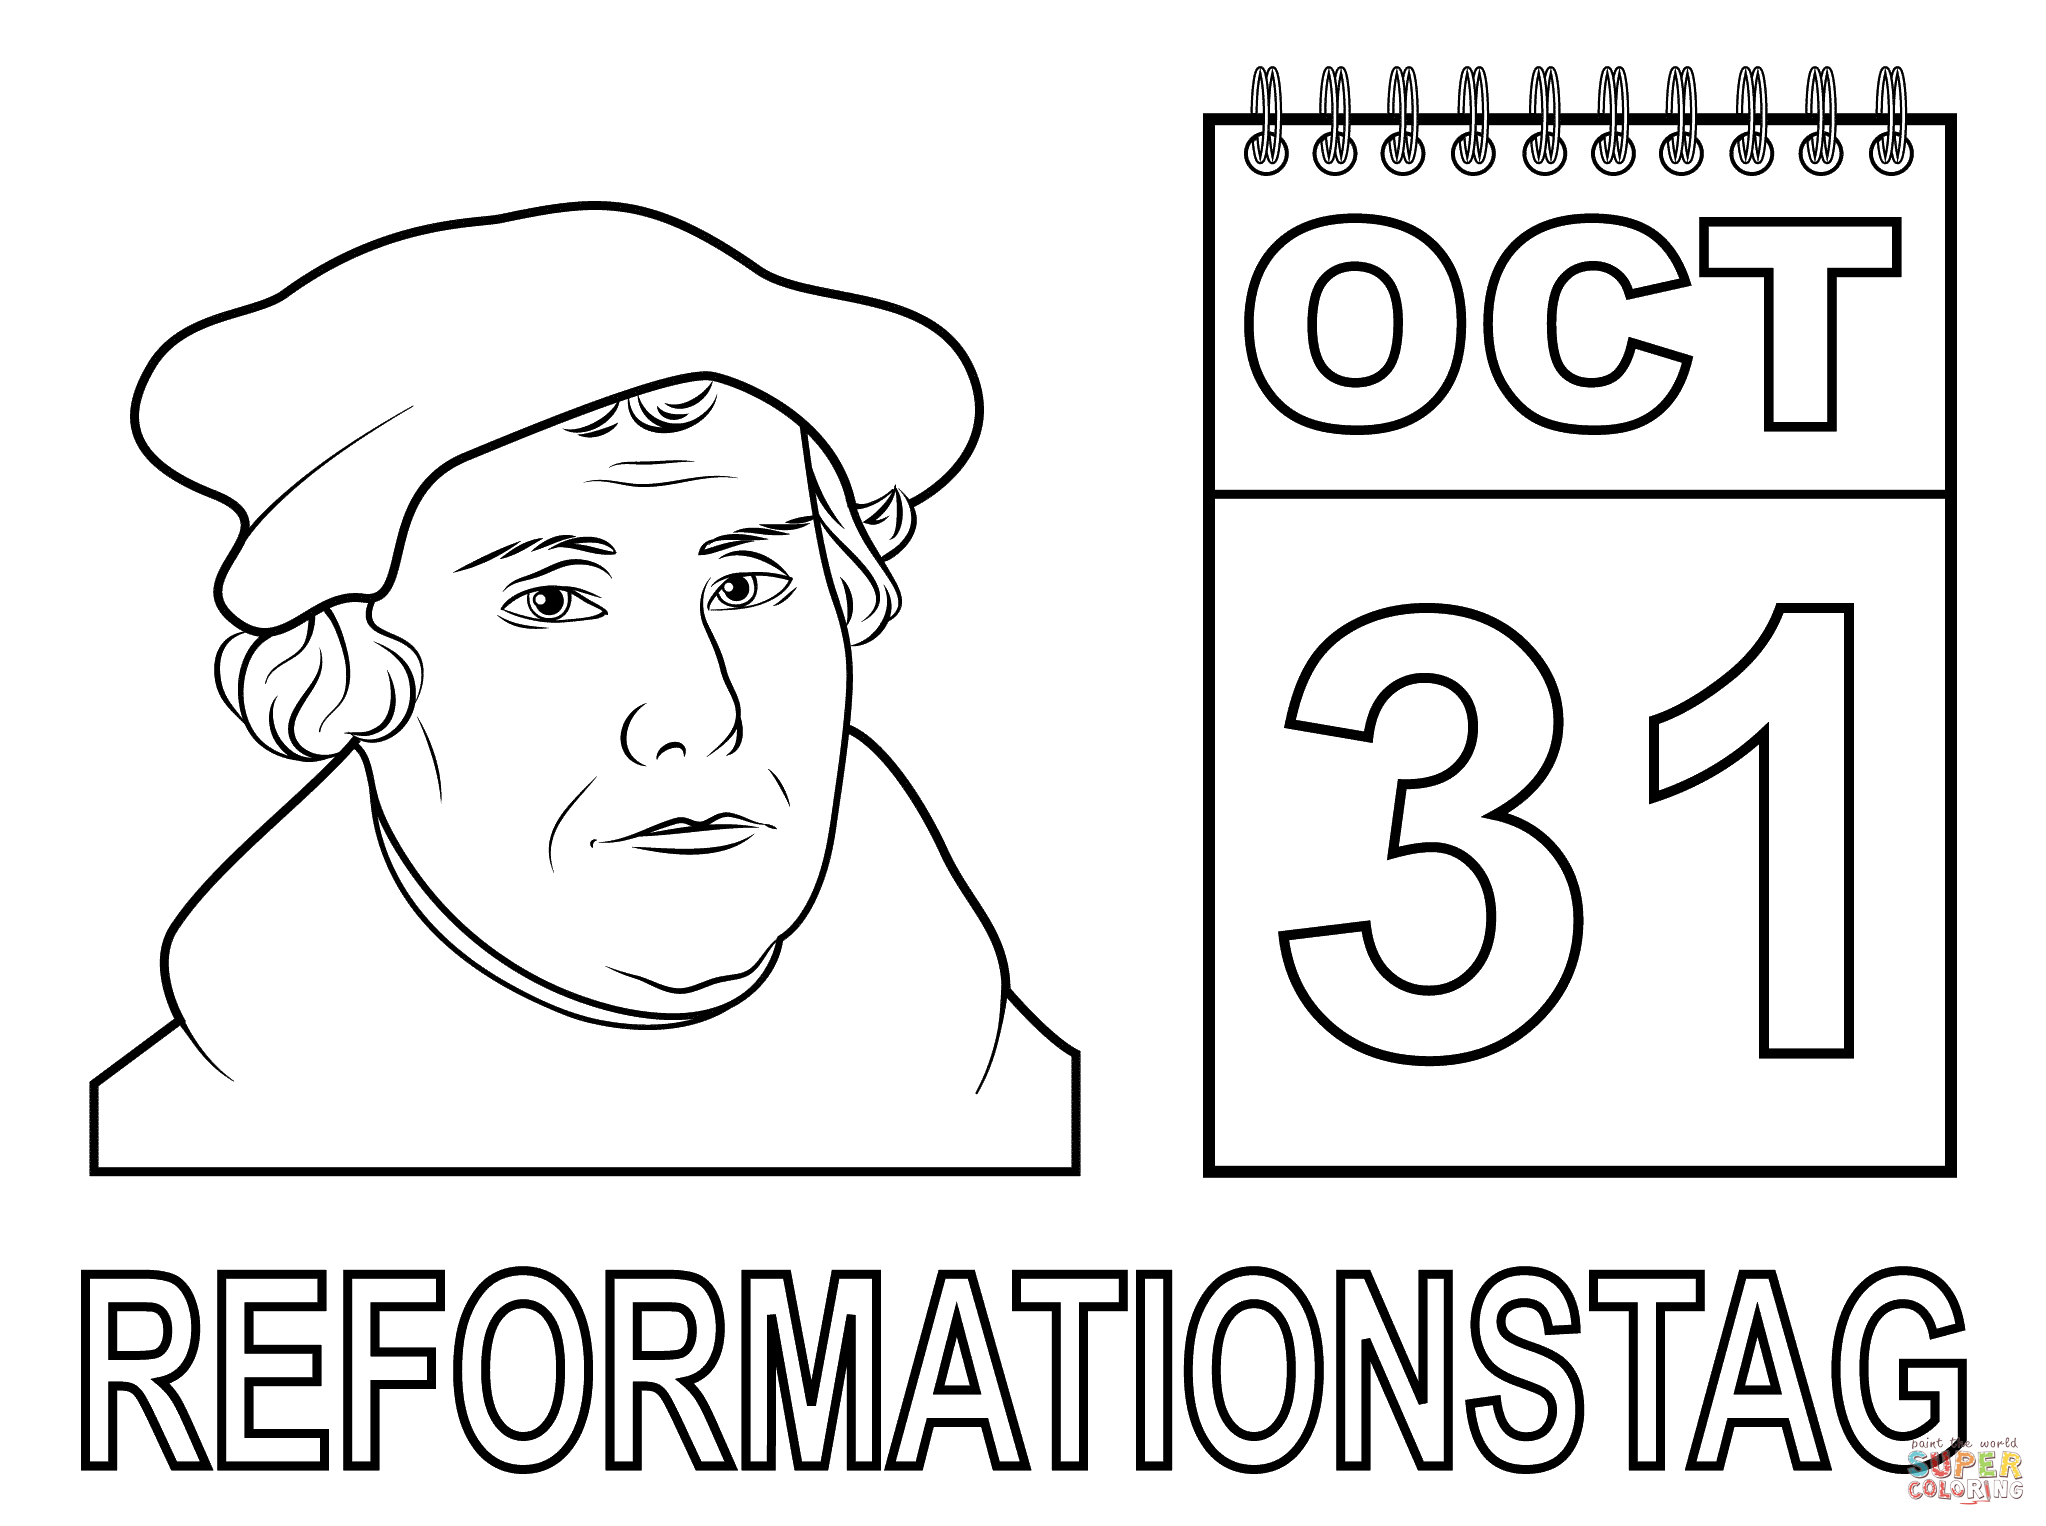 Reformation Day Coloring Page